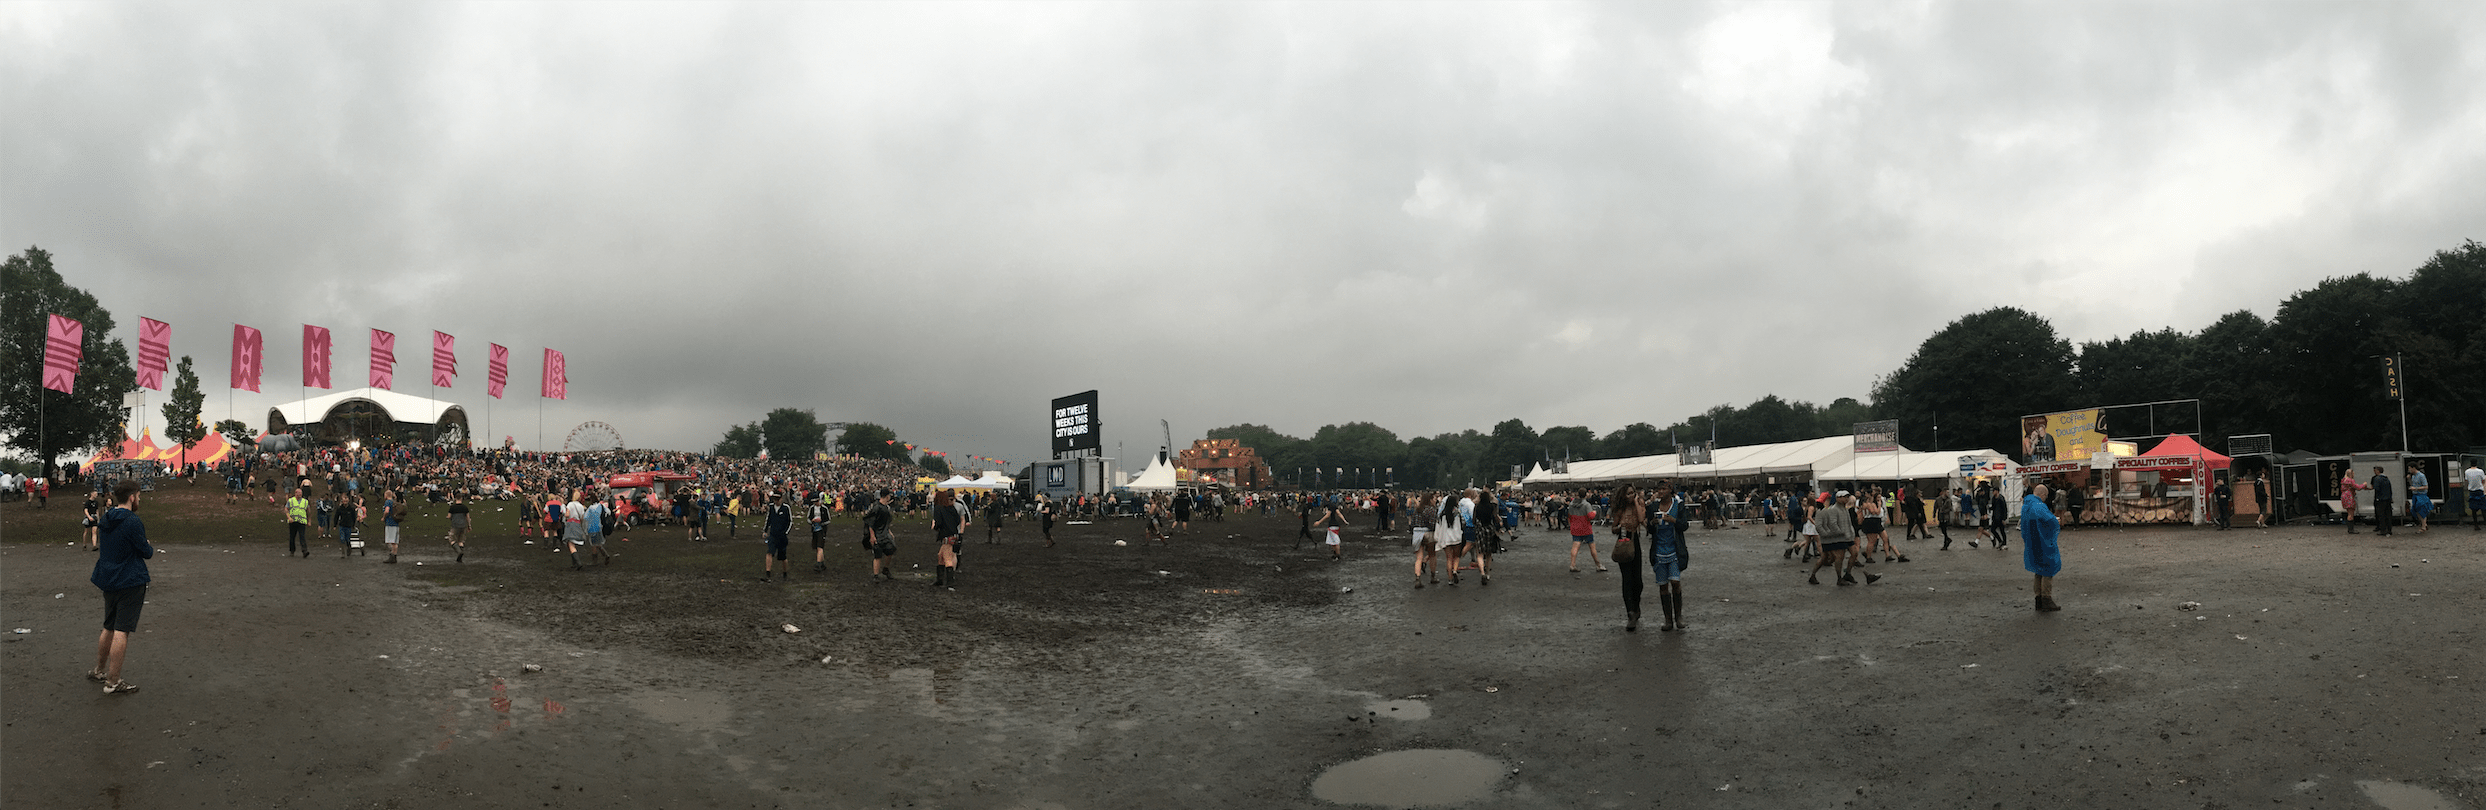 Manchester's classic gloomy weather during Parklife 2016 at Heaton Park.